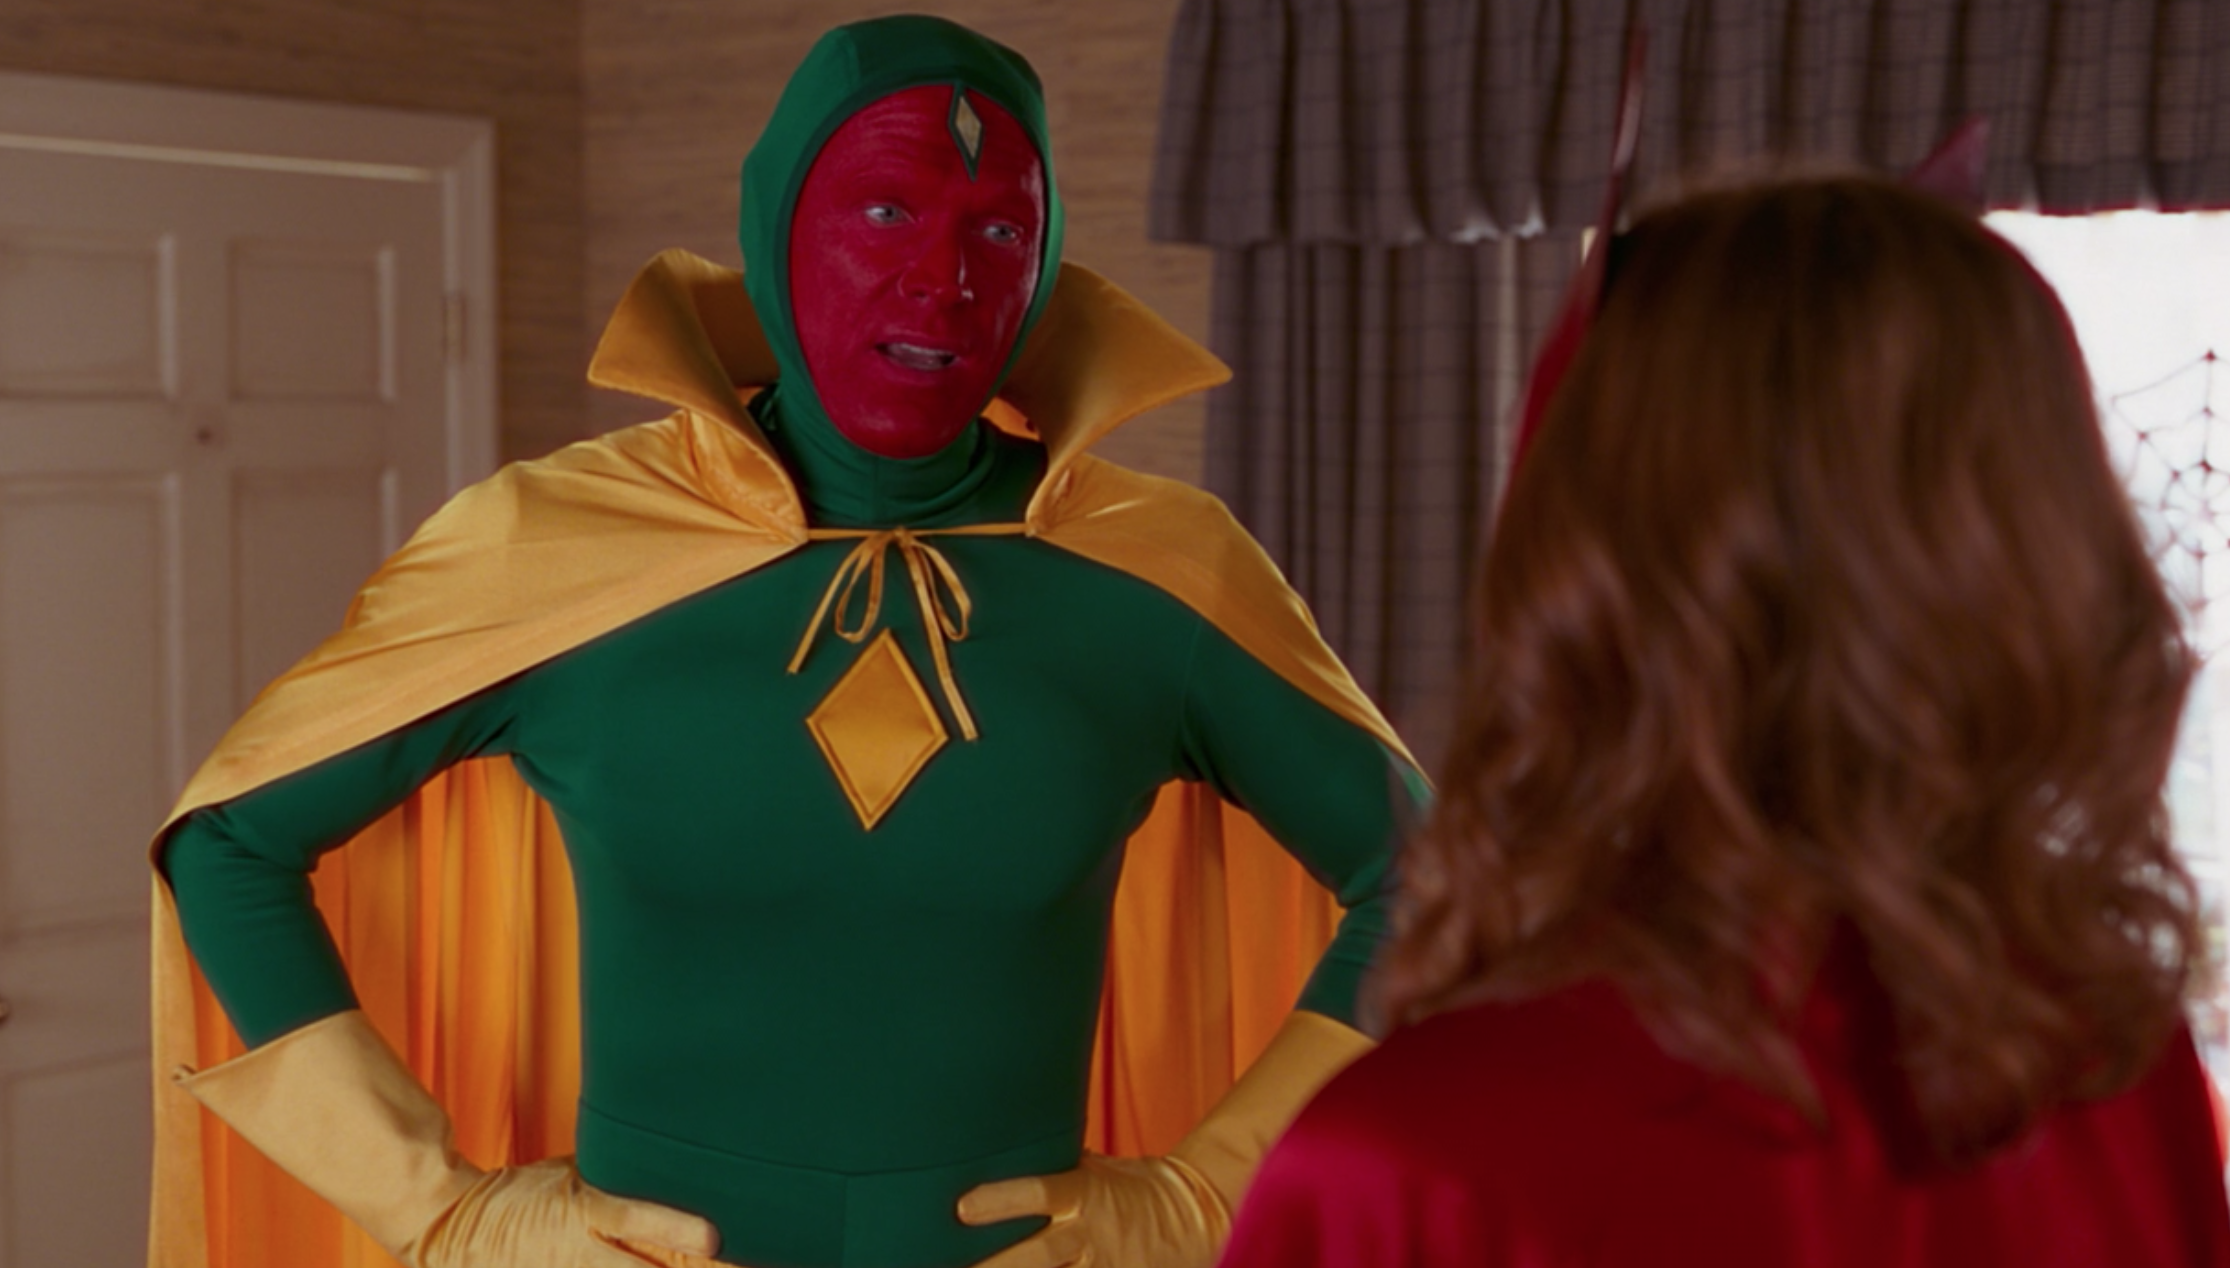 Vision wears a green body suit, a yellow cape, and matching gloves with his entire face painted bright red.